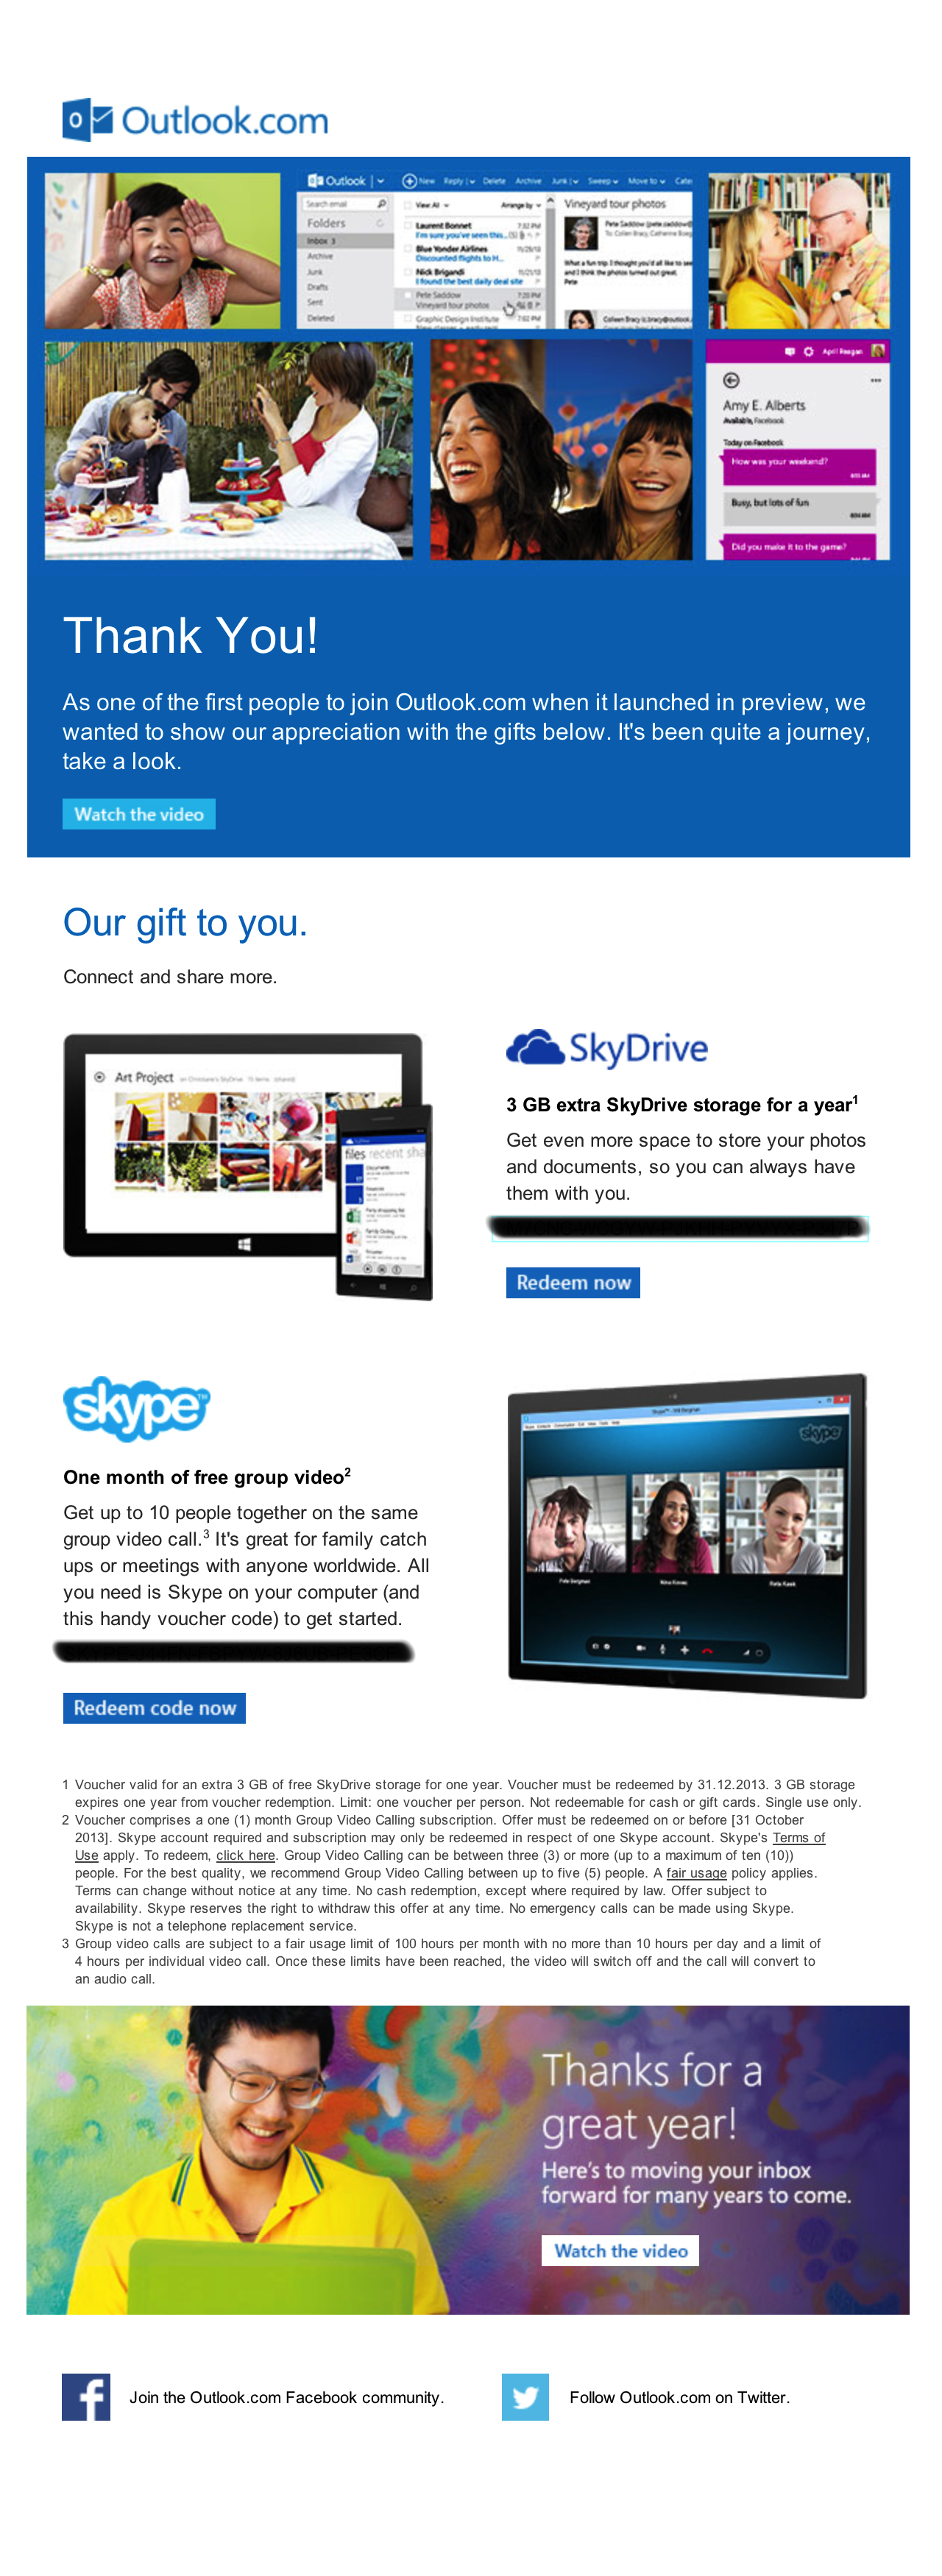 Outlook.com provides 3GB SkyDrive and Group call on Skype